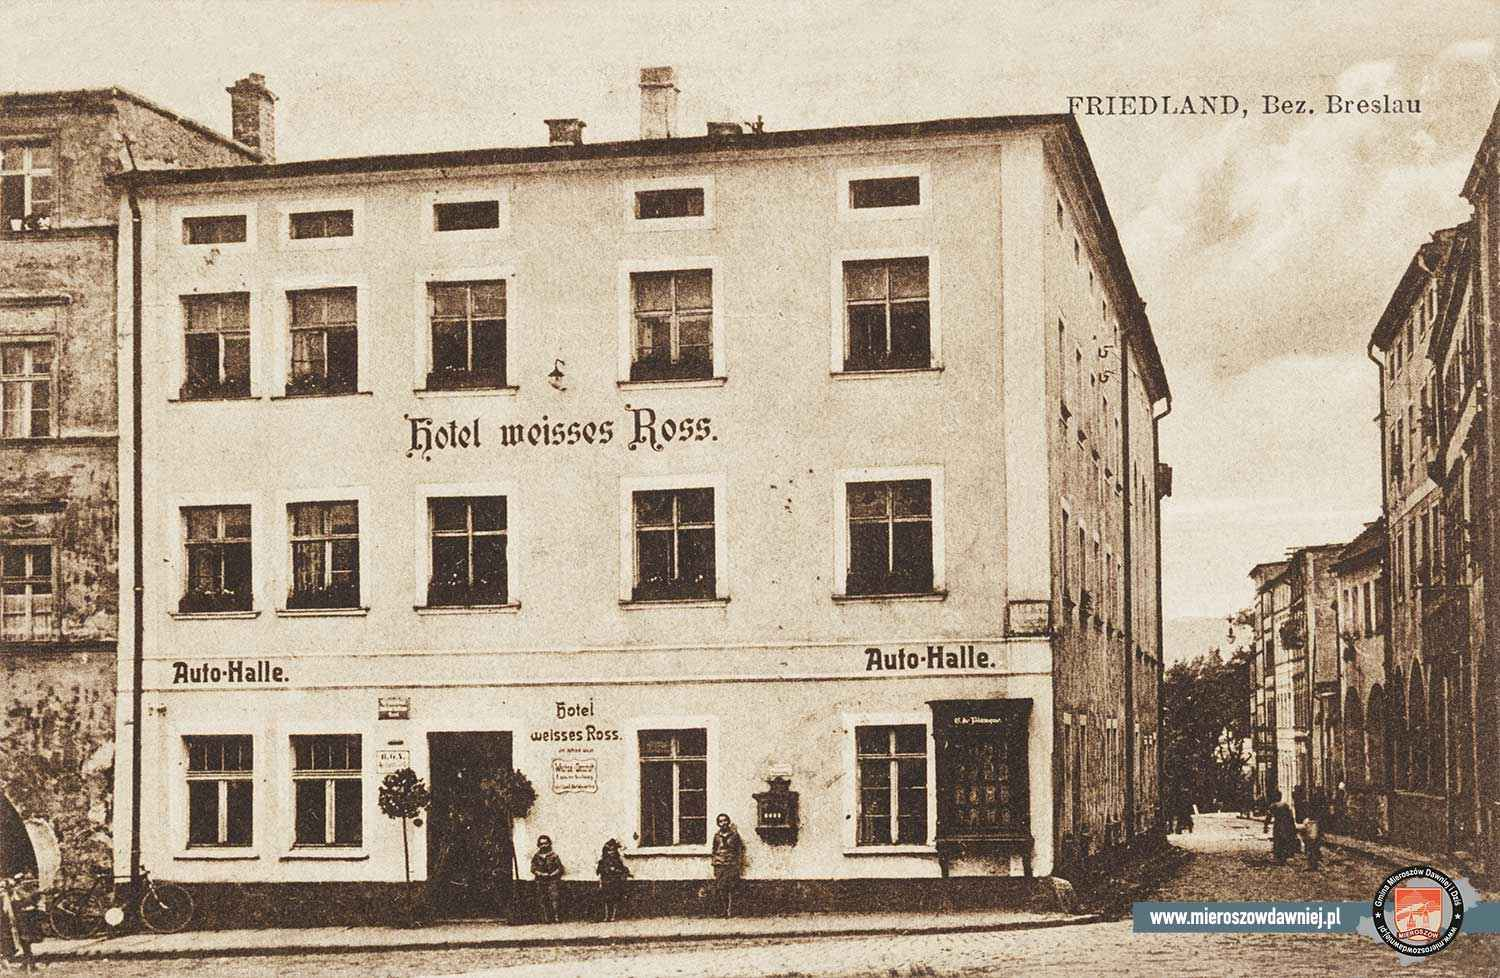 1925 Hotel Weisses Roβ